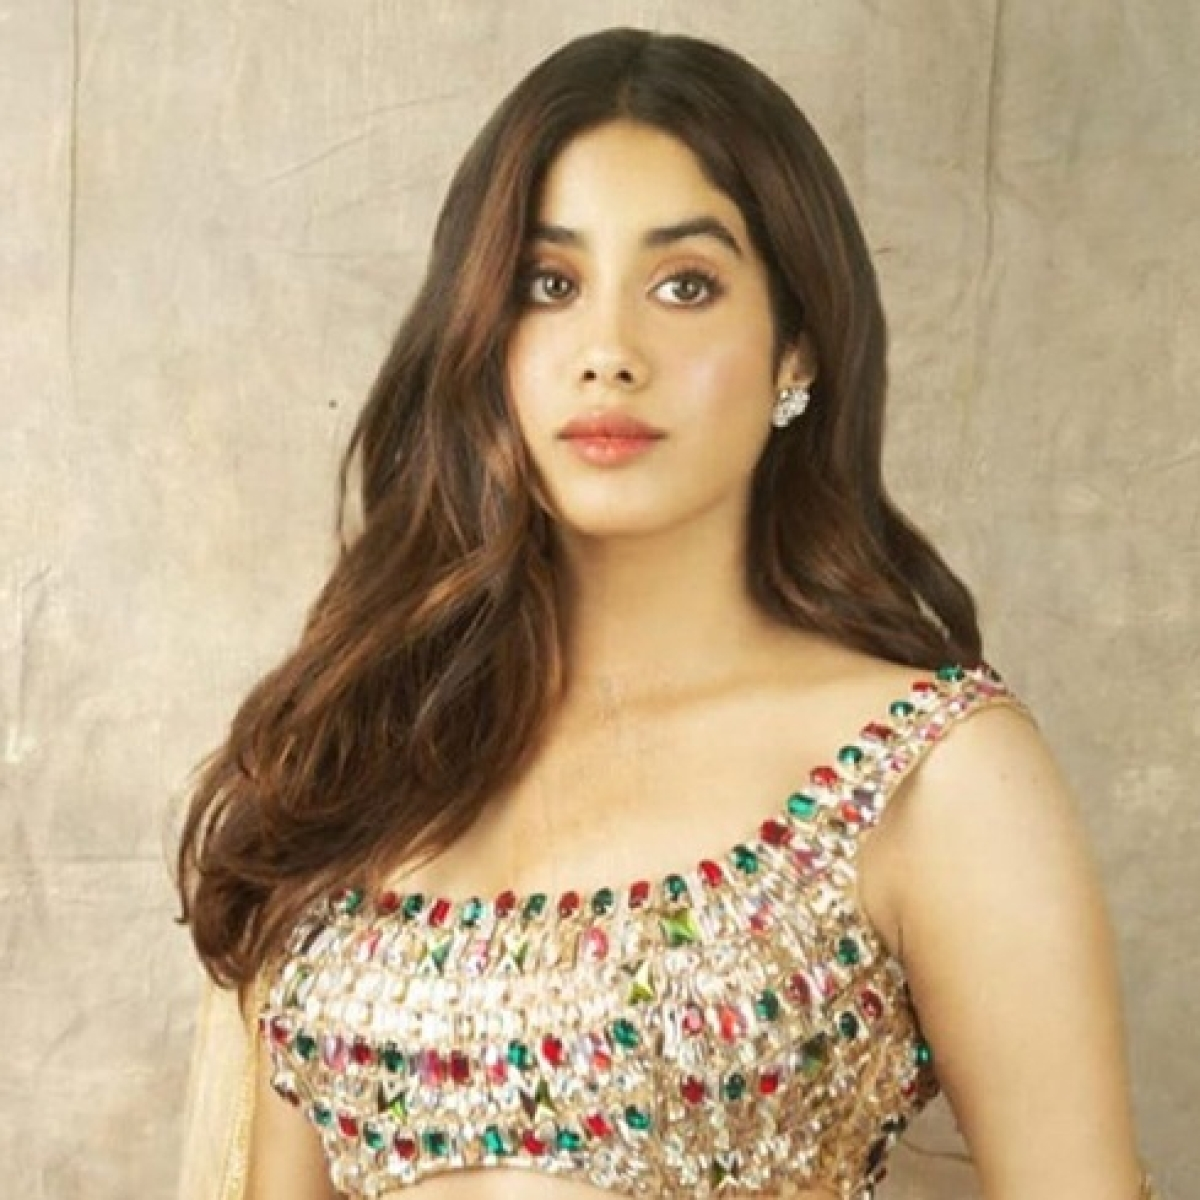 Watch: Janhvi Kapoor's scintillating dance performance is reminding the internet of Sridevi